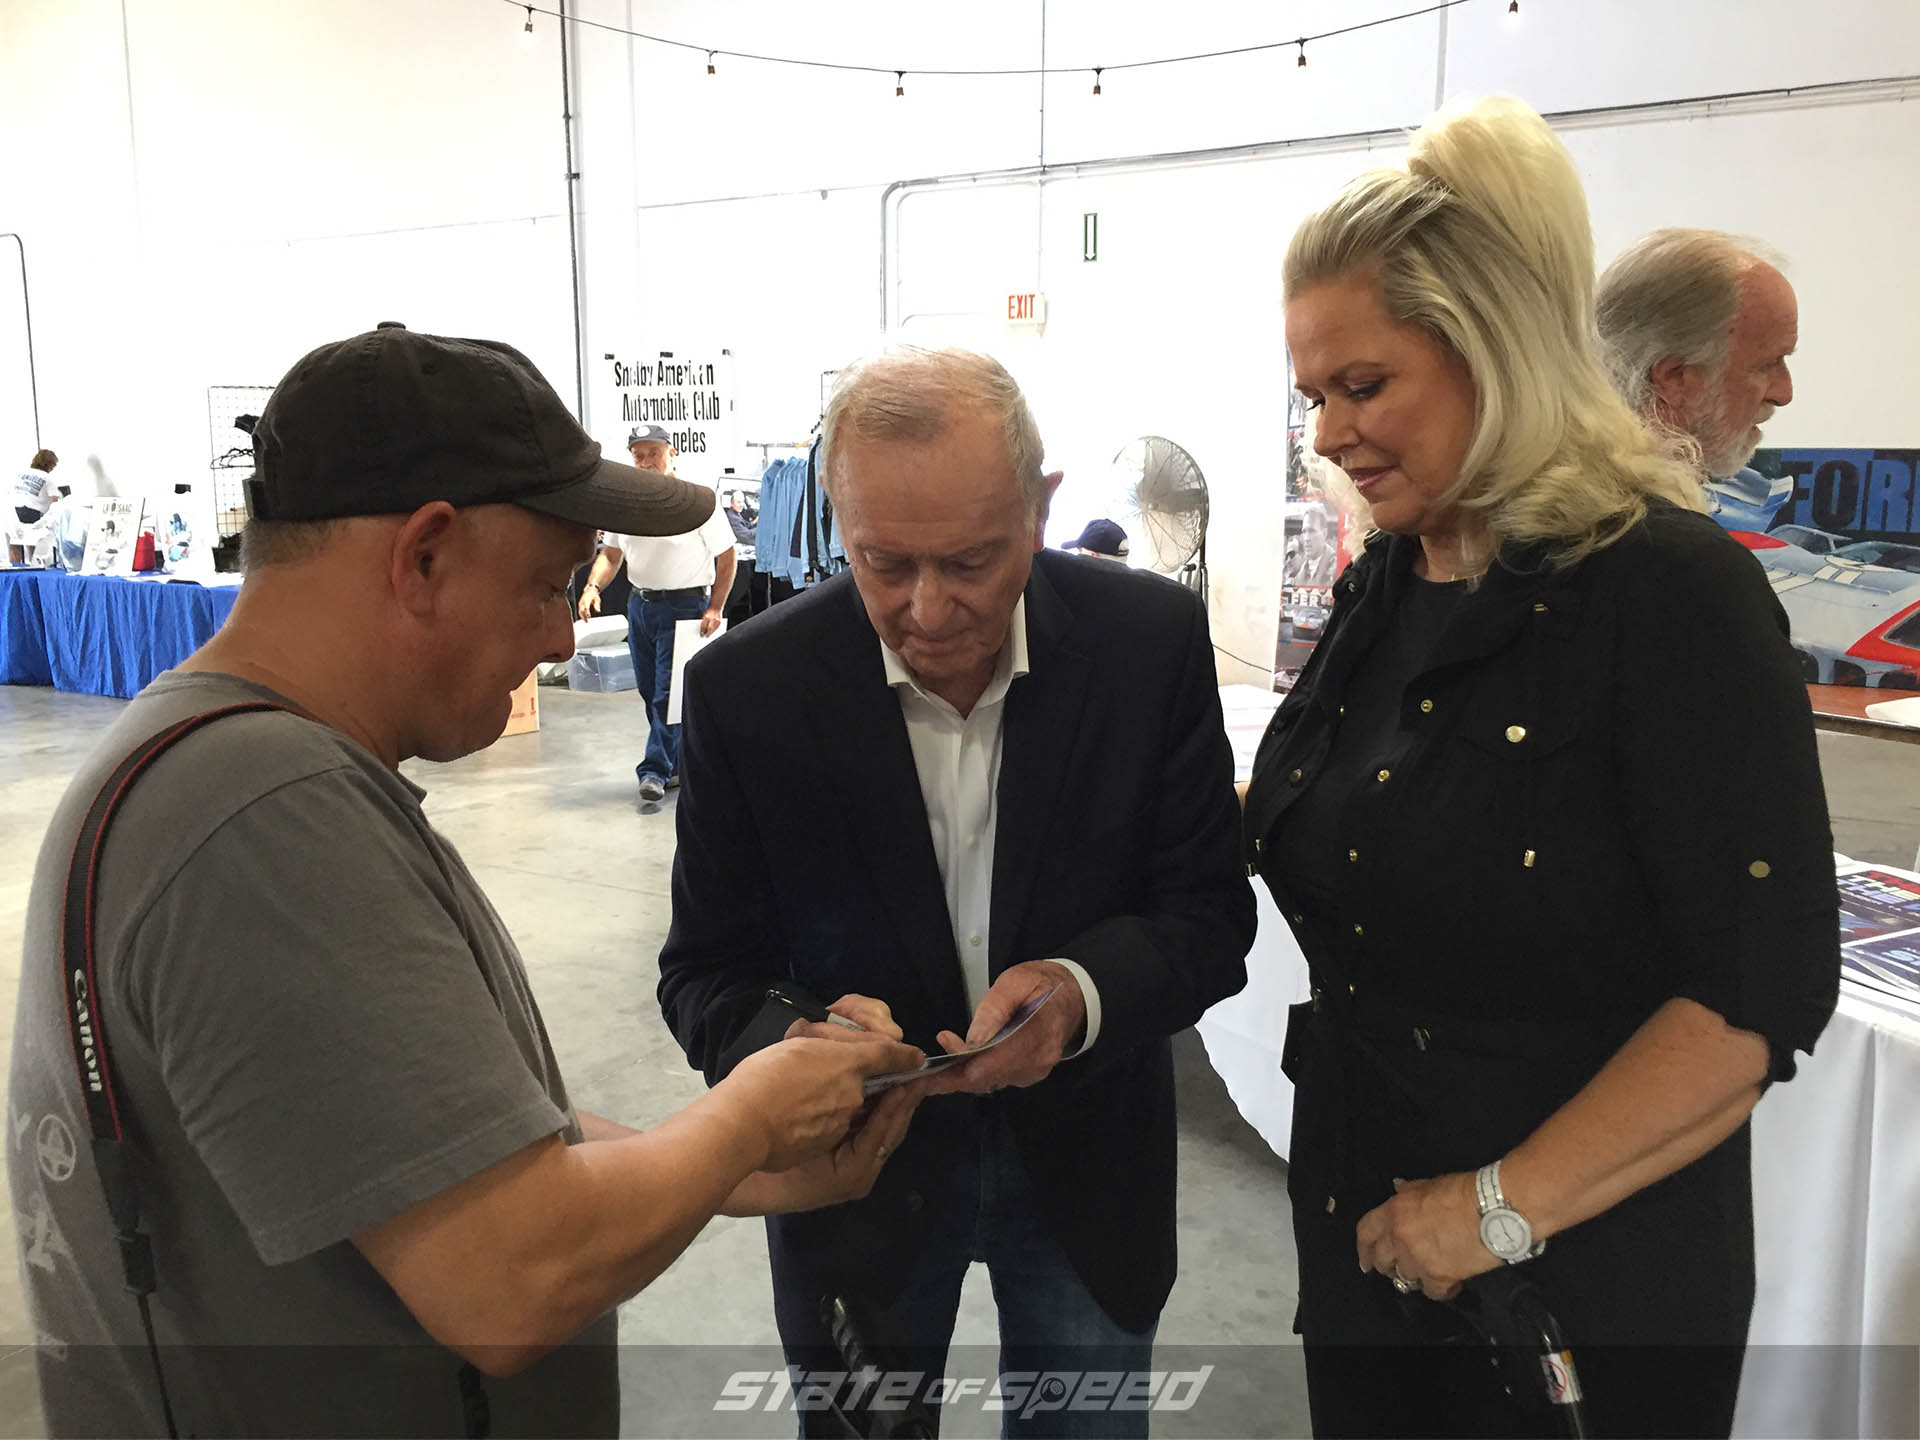 Bob Bondurant signing autographs at the Shelby headquarters